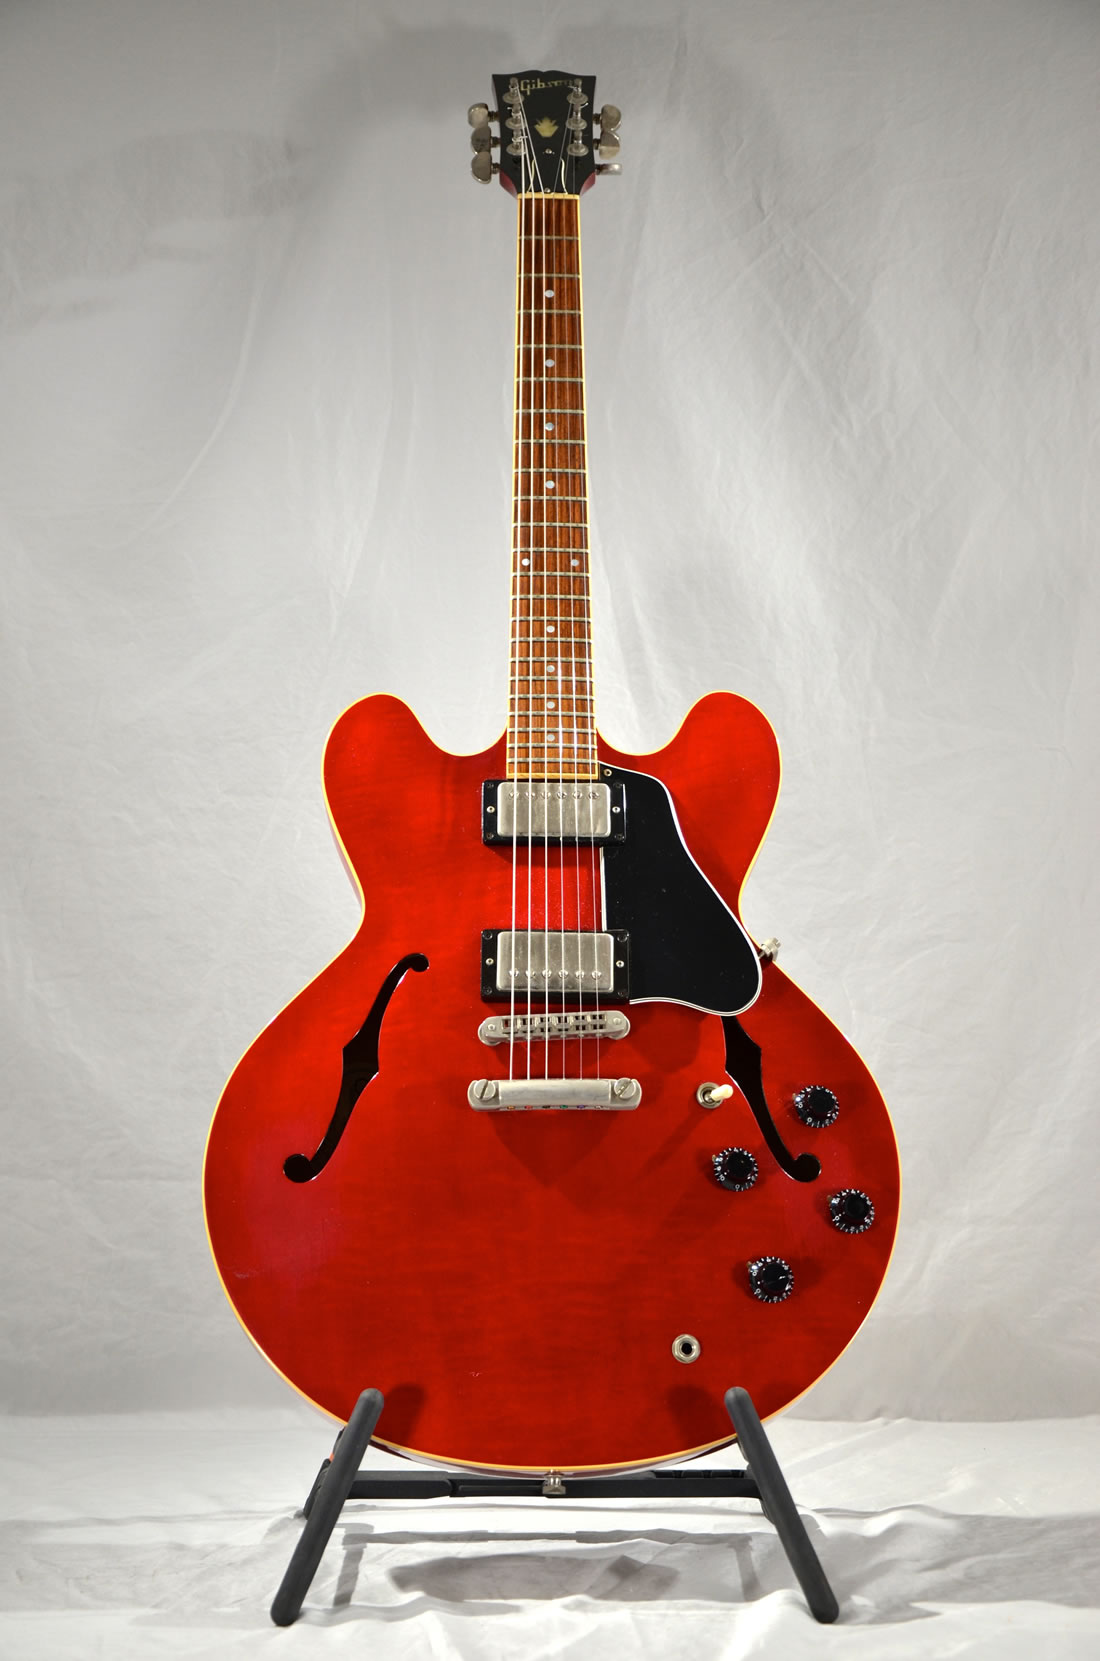 1984 Gibson ES-335 6 String Guitar, Cherry